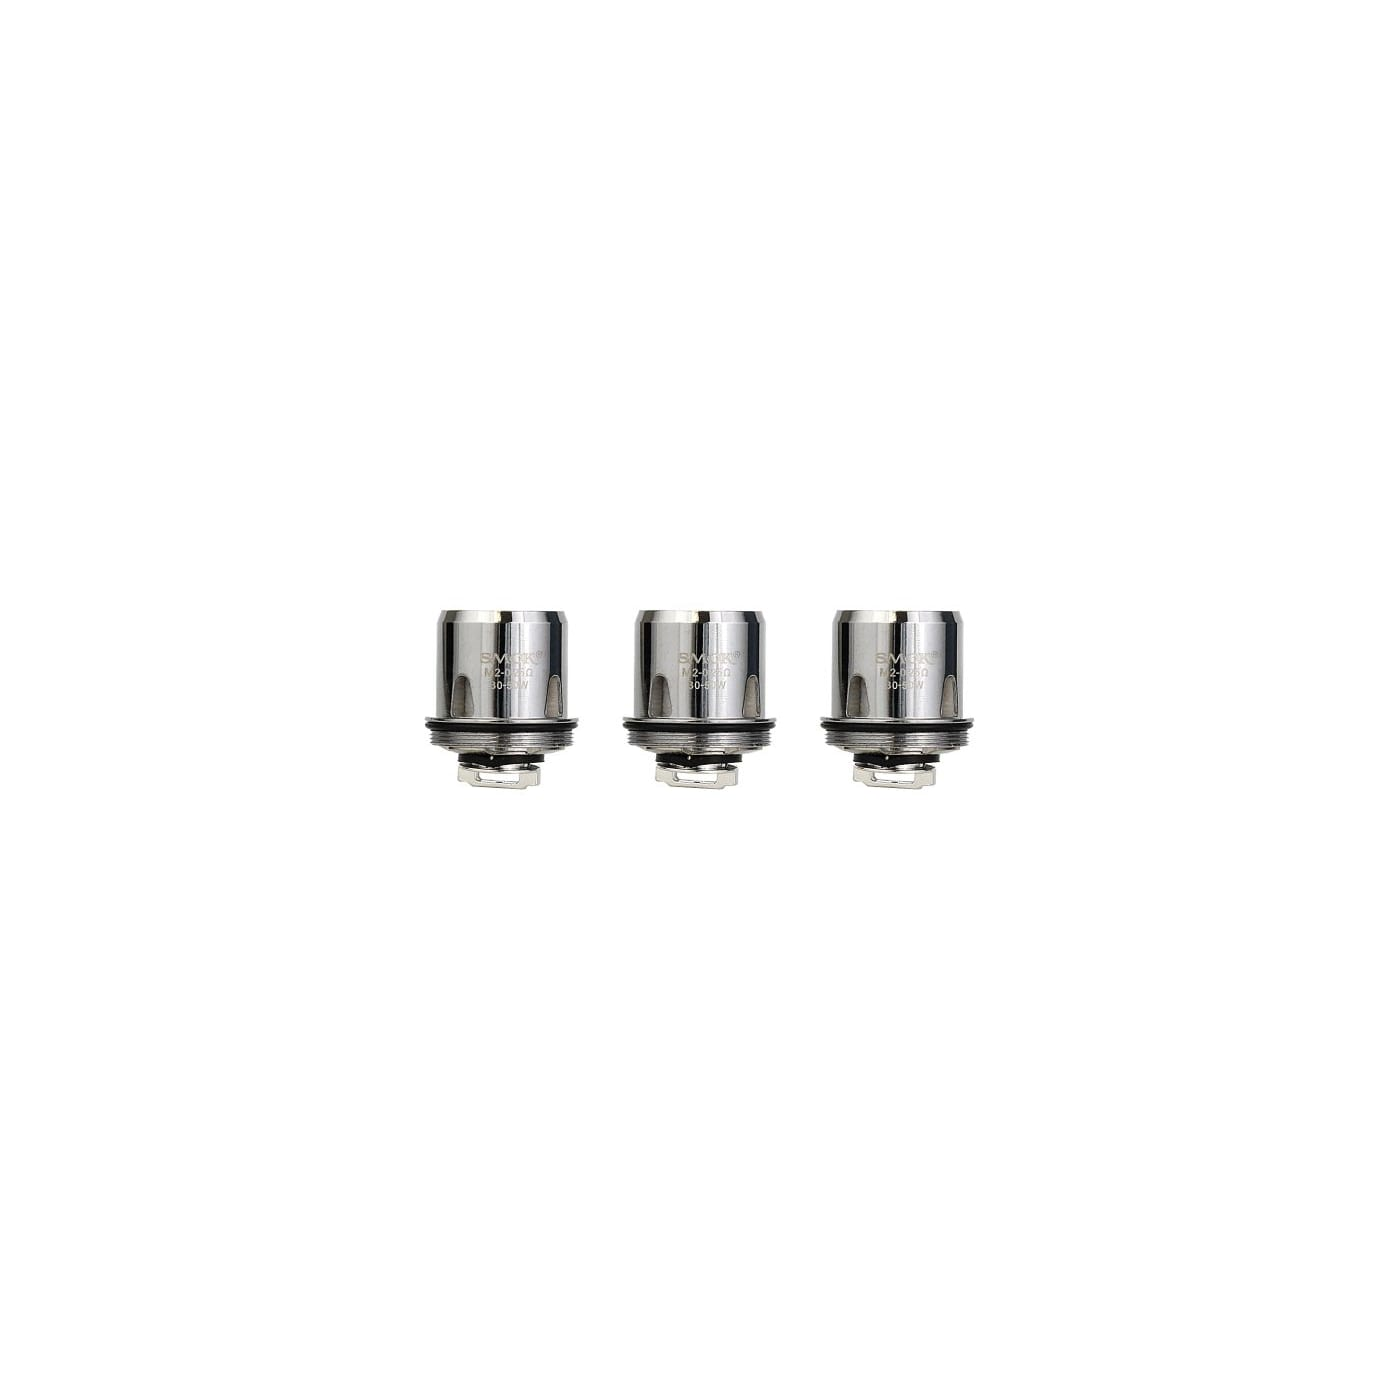 Smok Baby Beast X M2 Replacement Coil - 3 pack